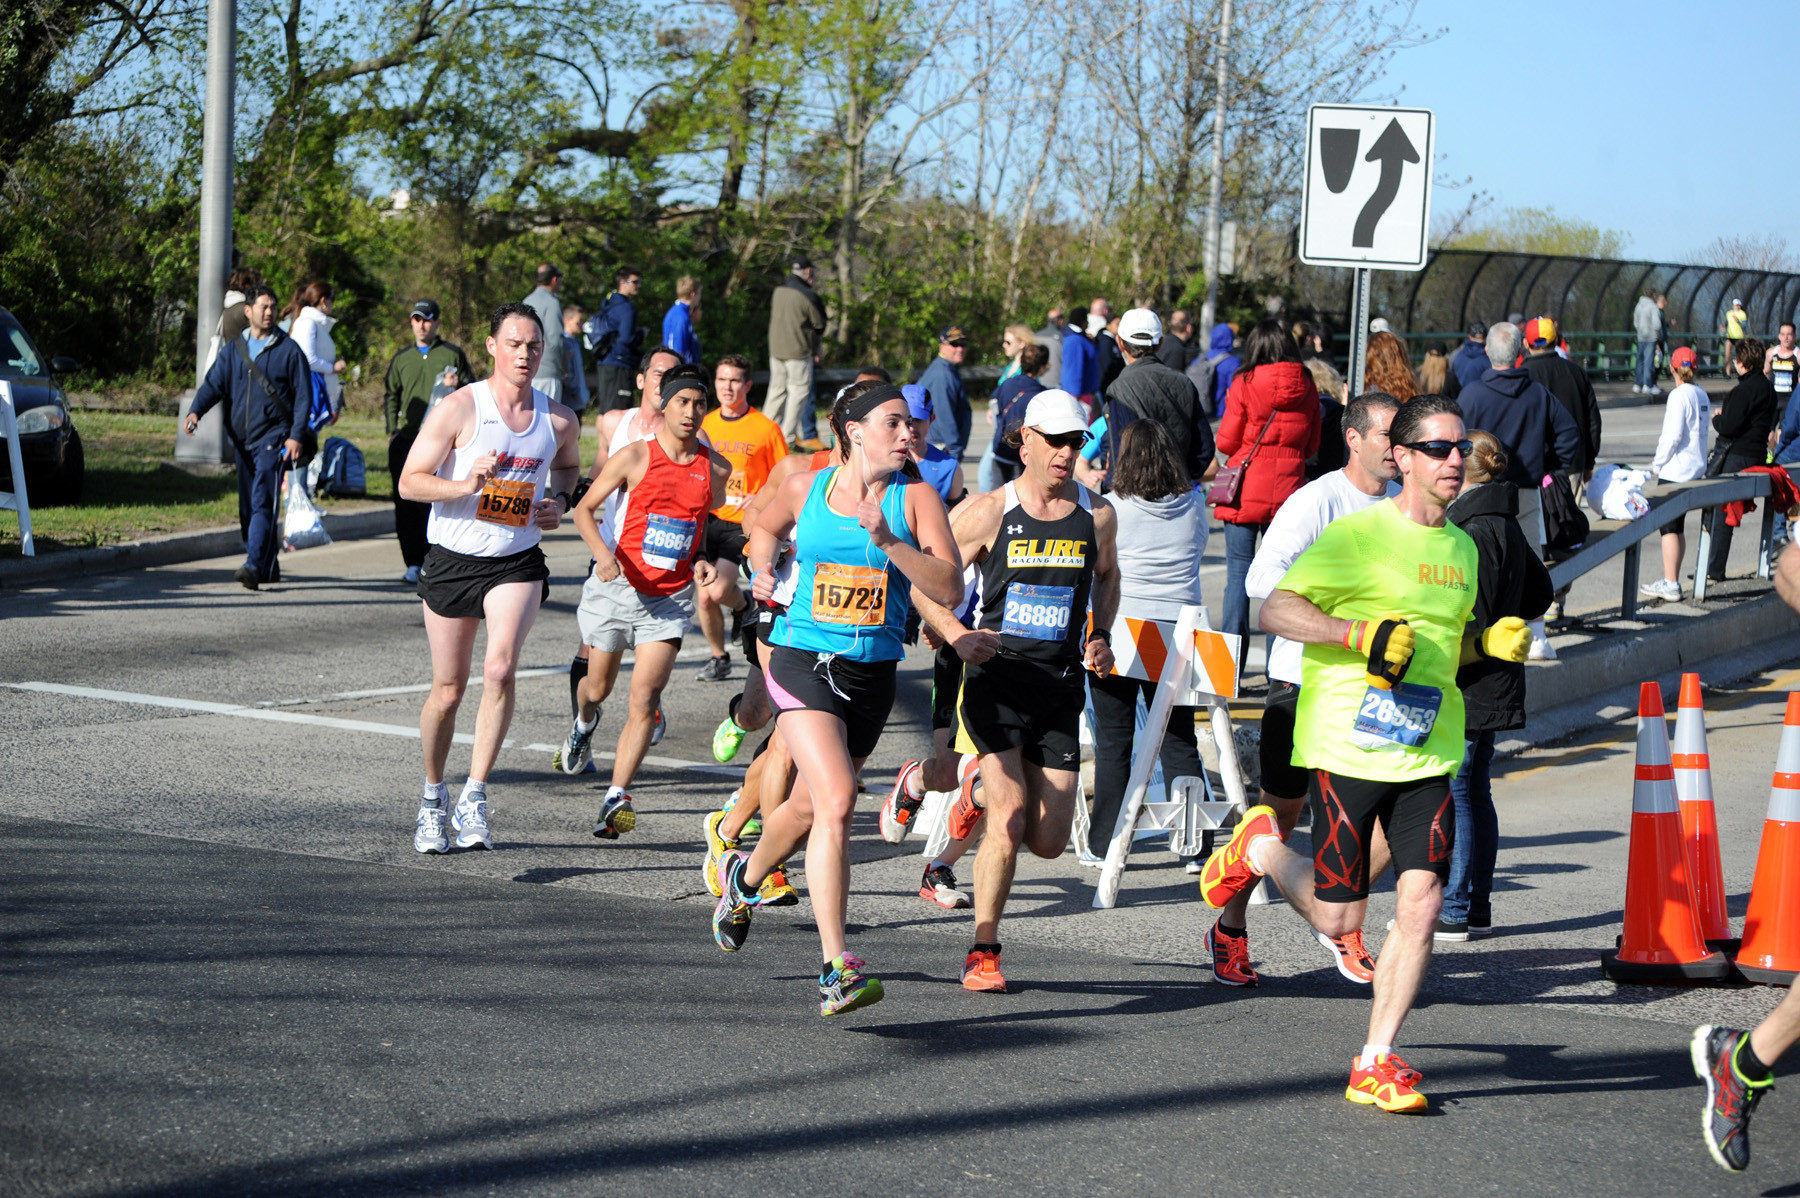 Photos by Donovan Berthoud/Herald